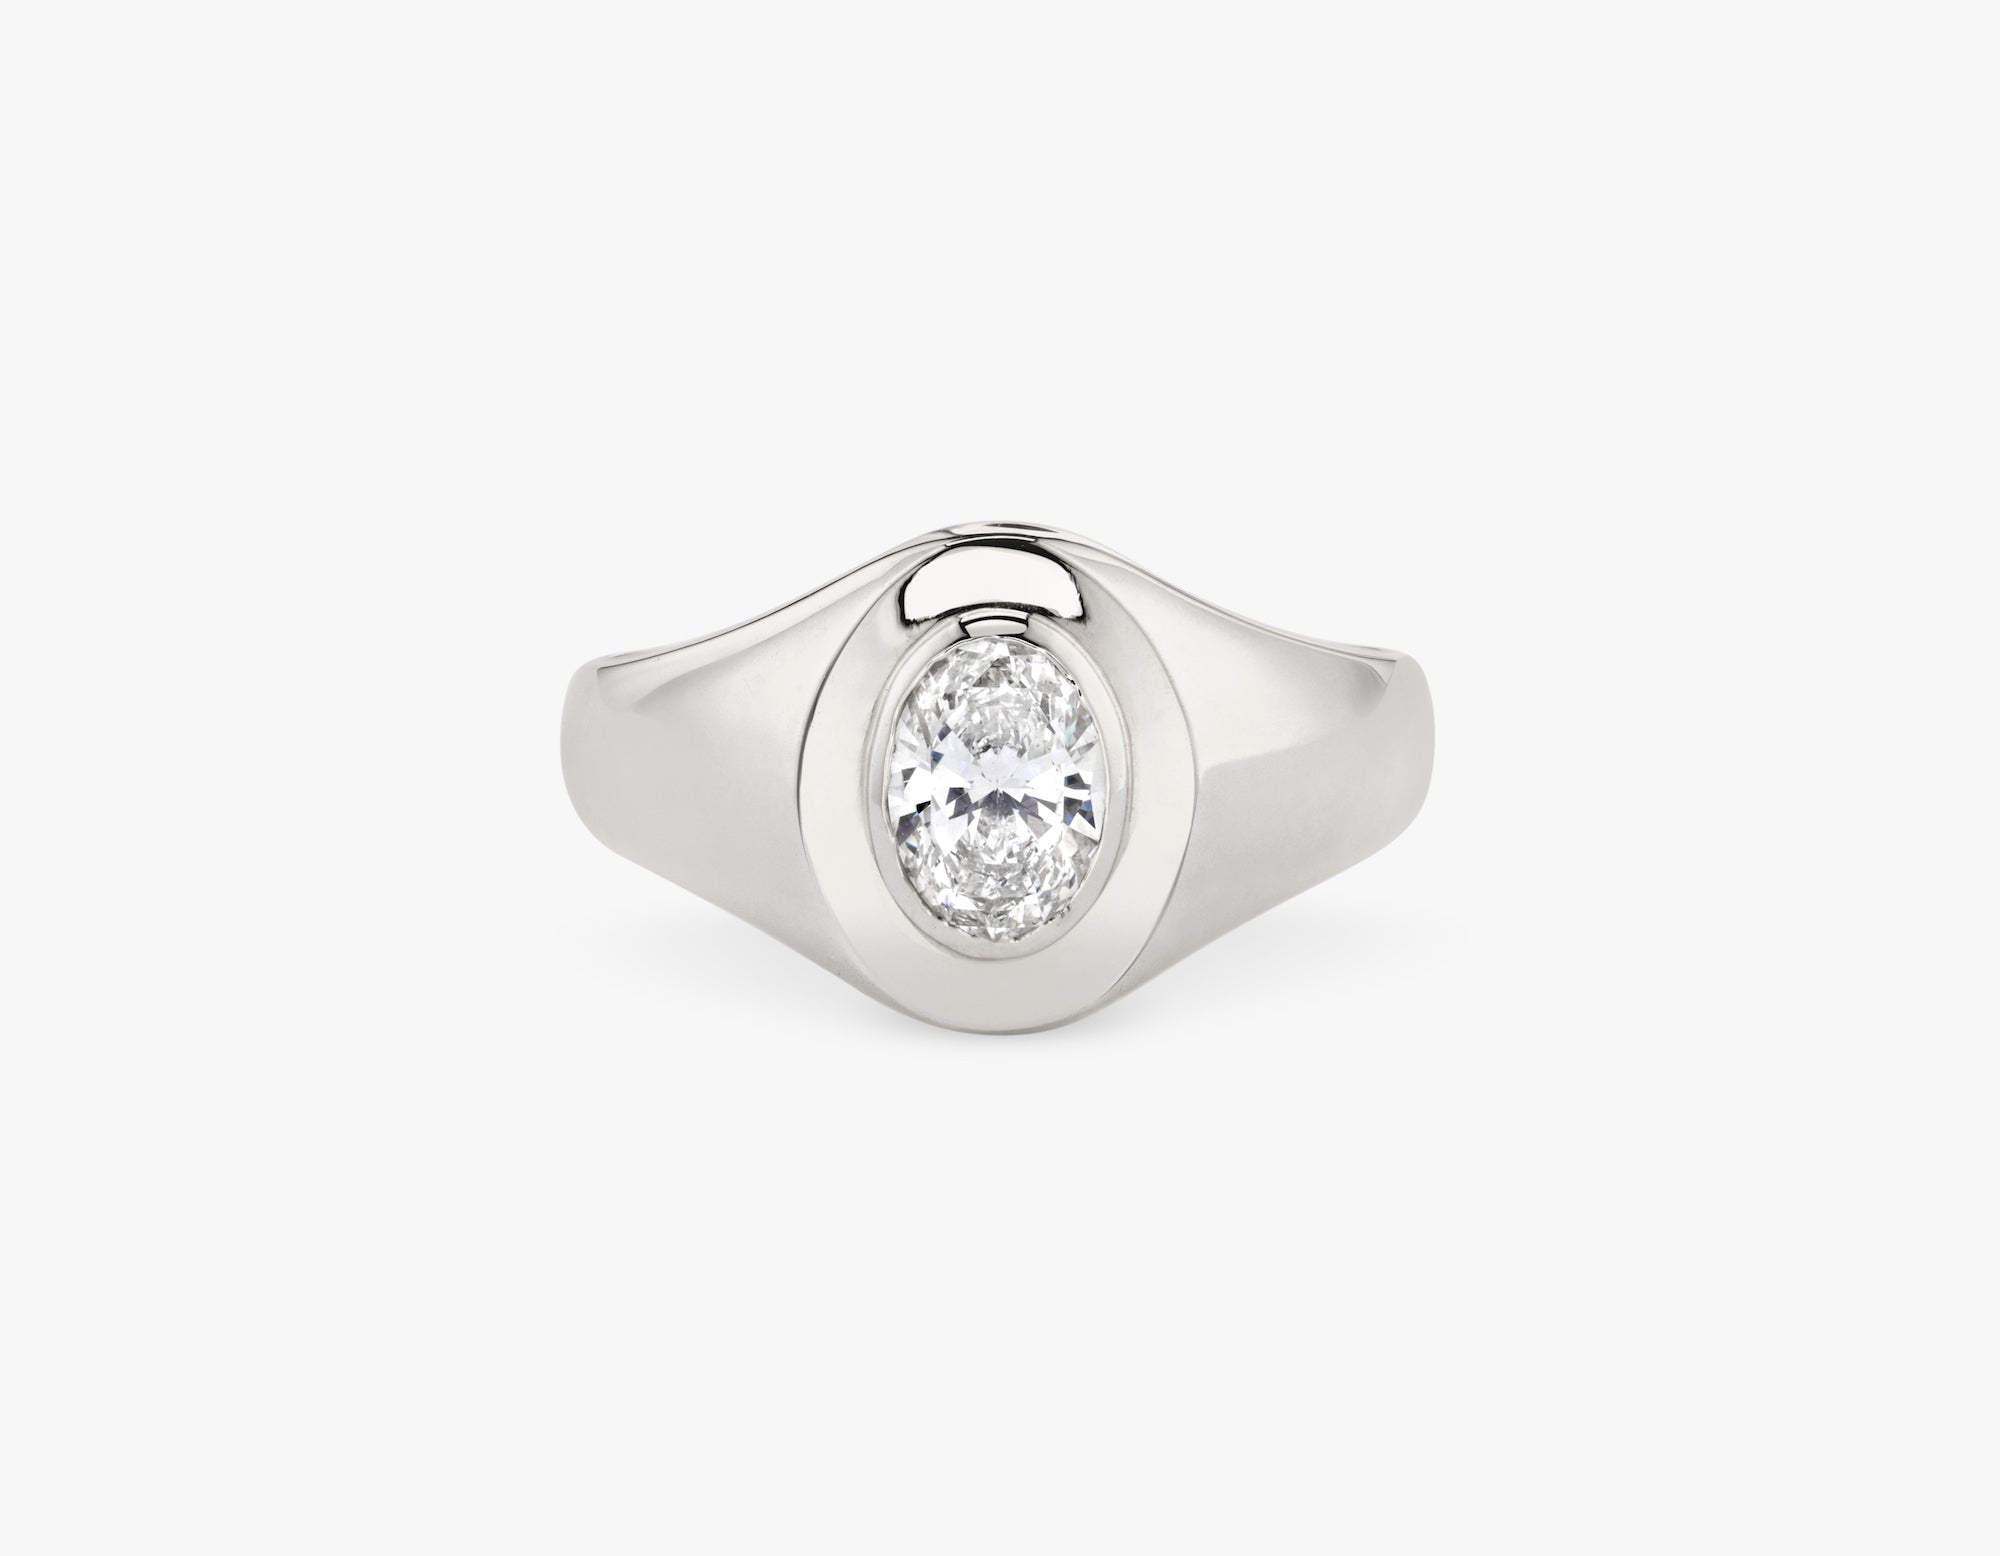 Vrai 14k solid gold classic simple Oval Diamond Signet Ring, 14K White Gold